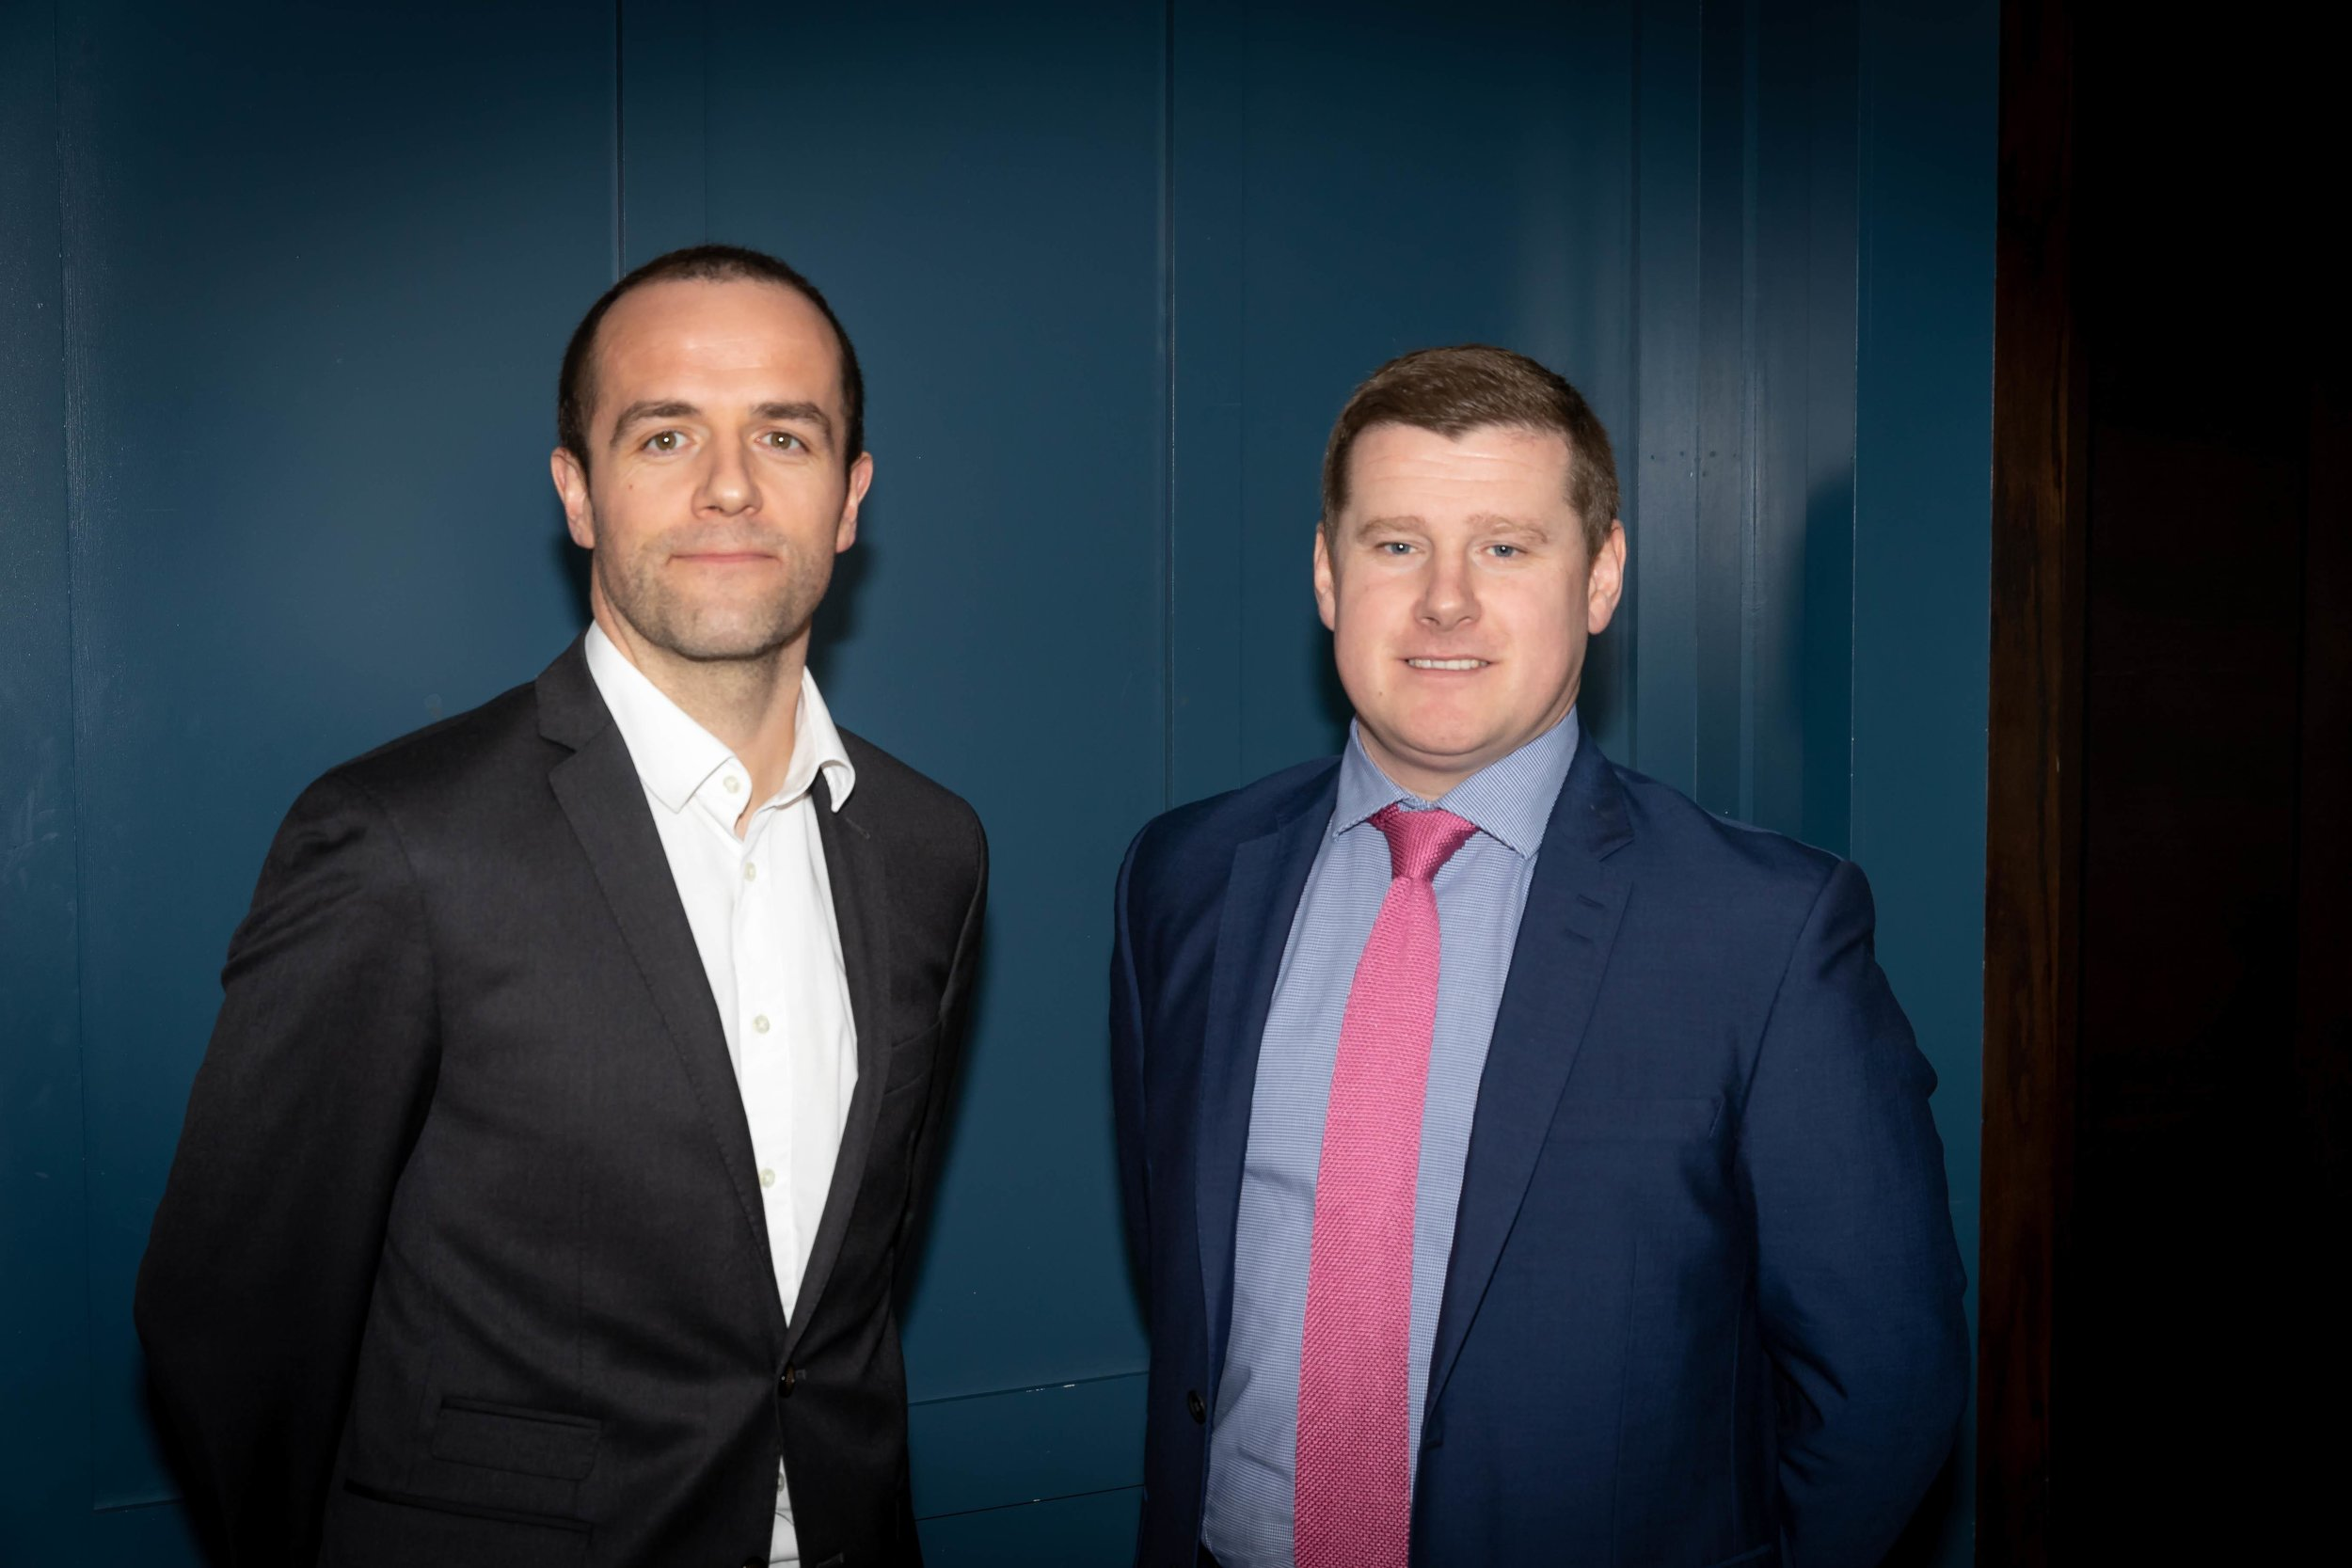 Mark is pictured on the right with current Chairman Aaron Mooney.